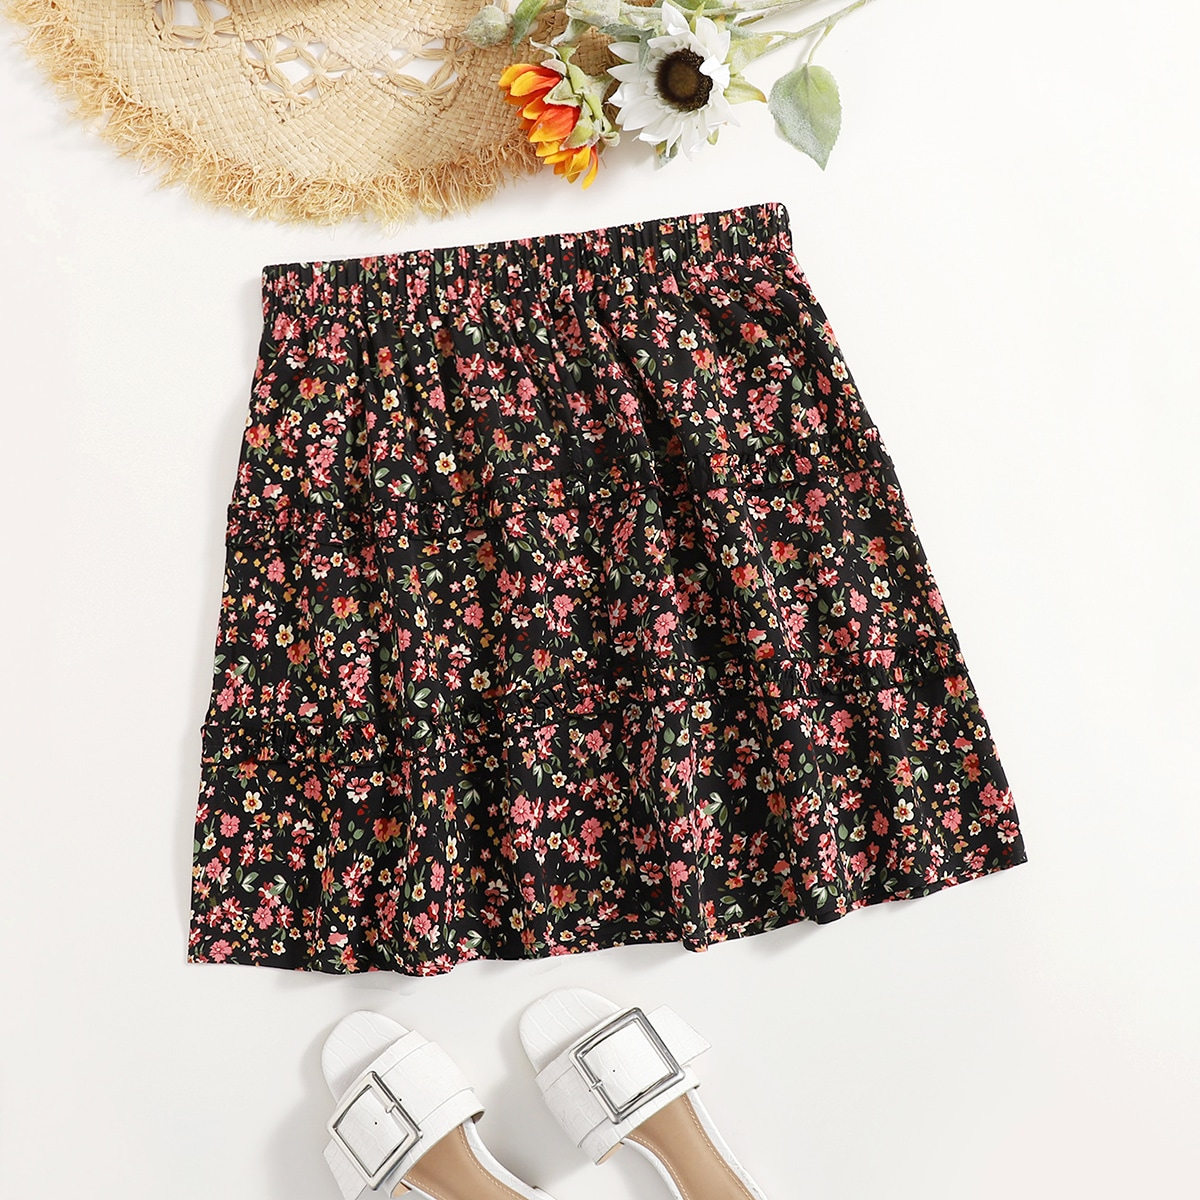 Plus Ditsy Floral Flared Skirt, SHEIN  - buy with discount